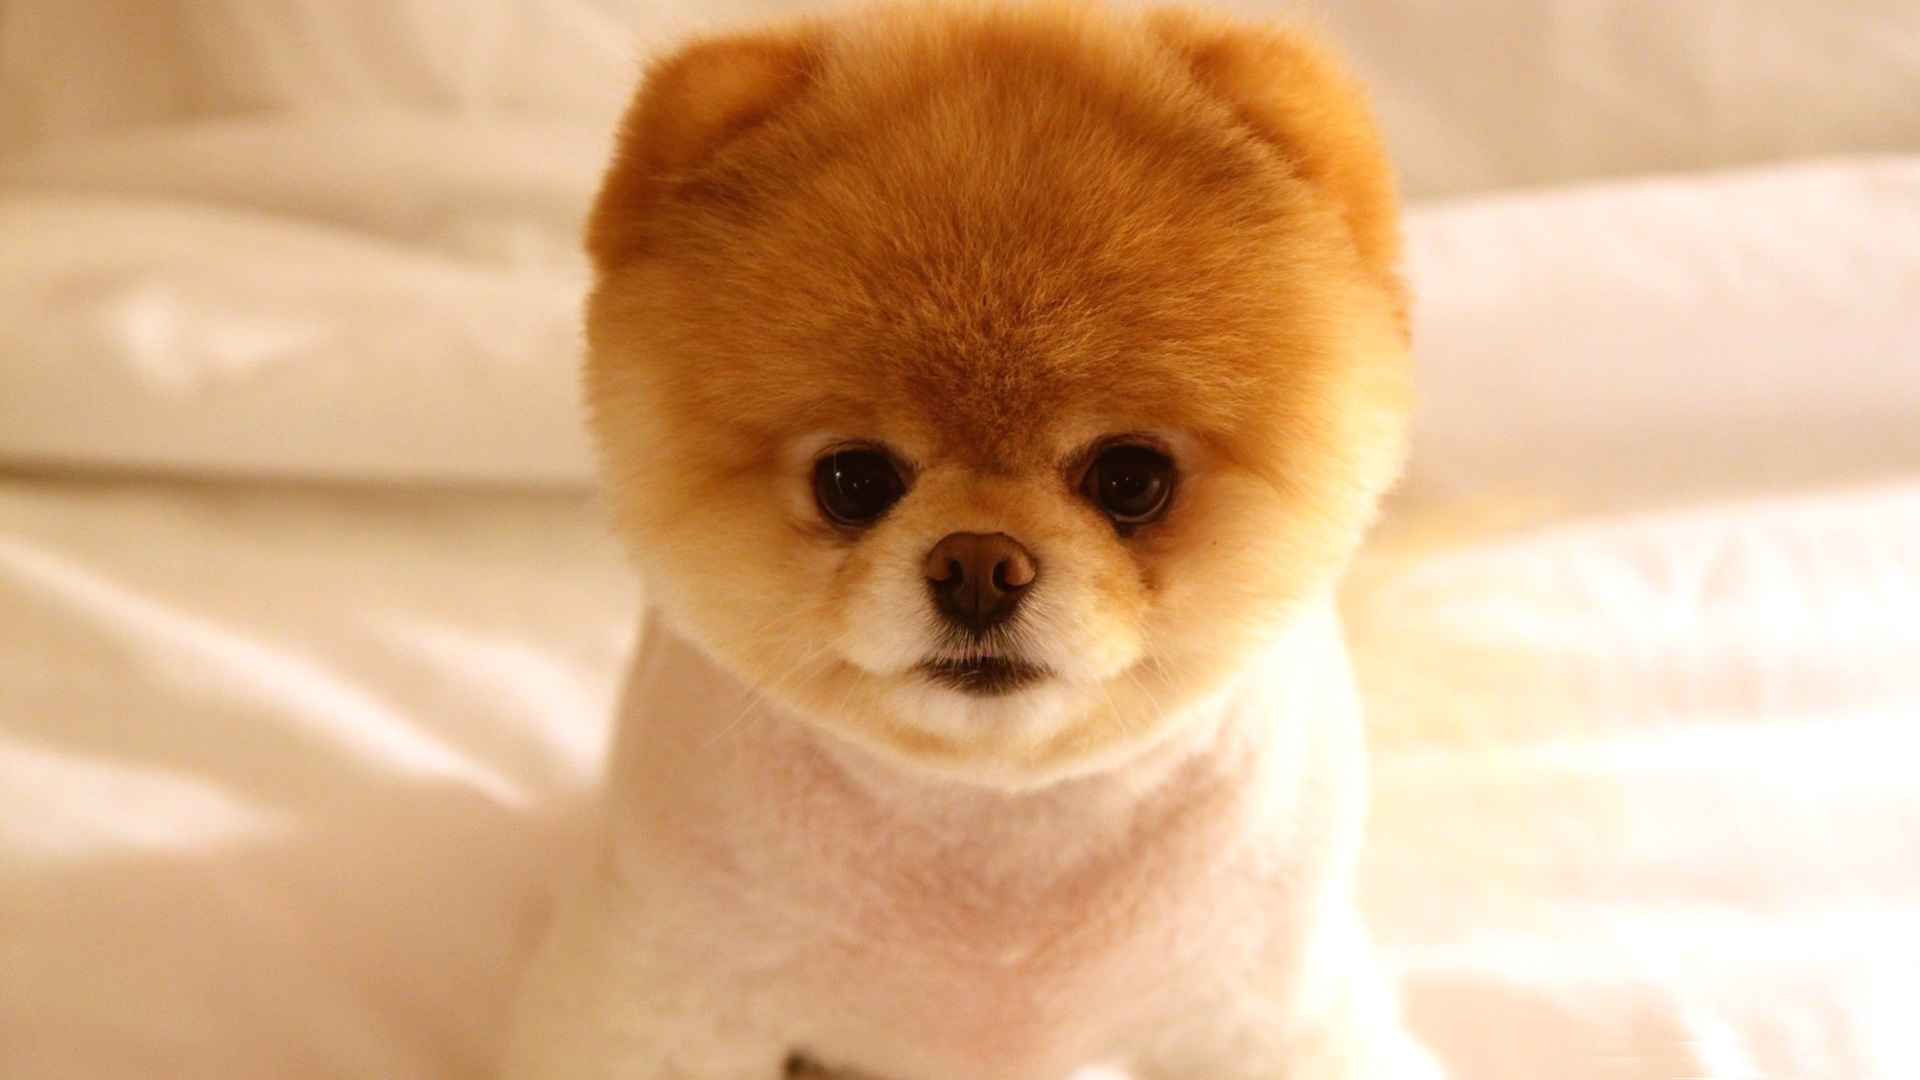 Cute Puppy Wallpaper   Looks Like A Teddy Bear 118426   HD 1920x1080